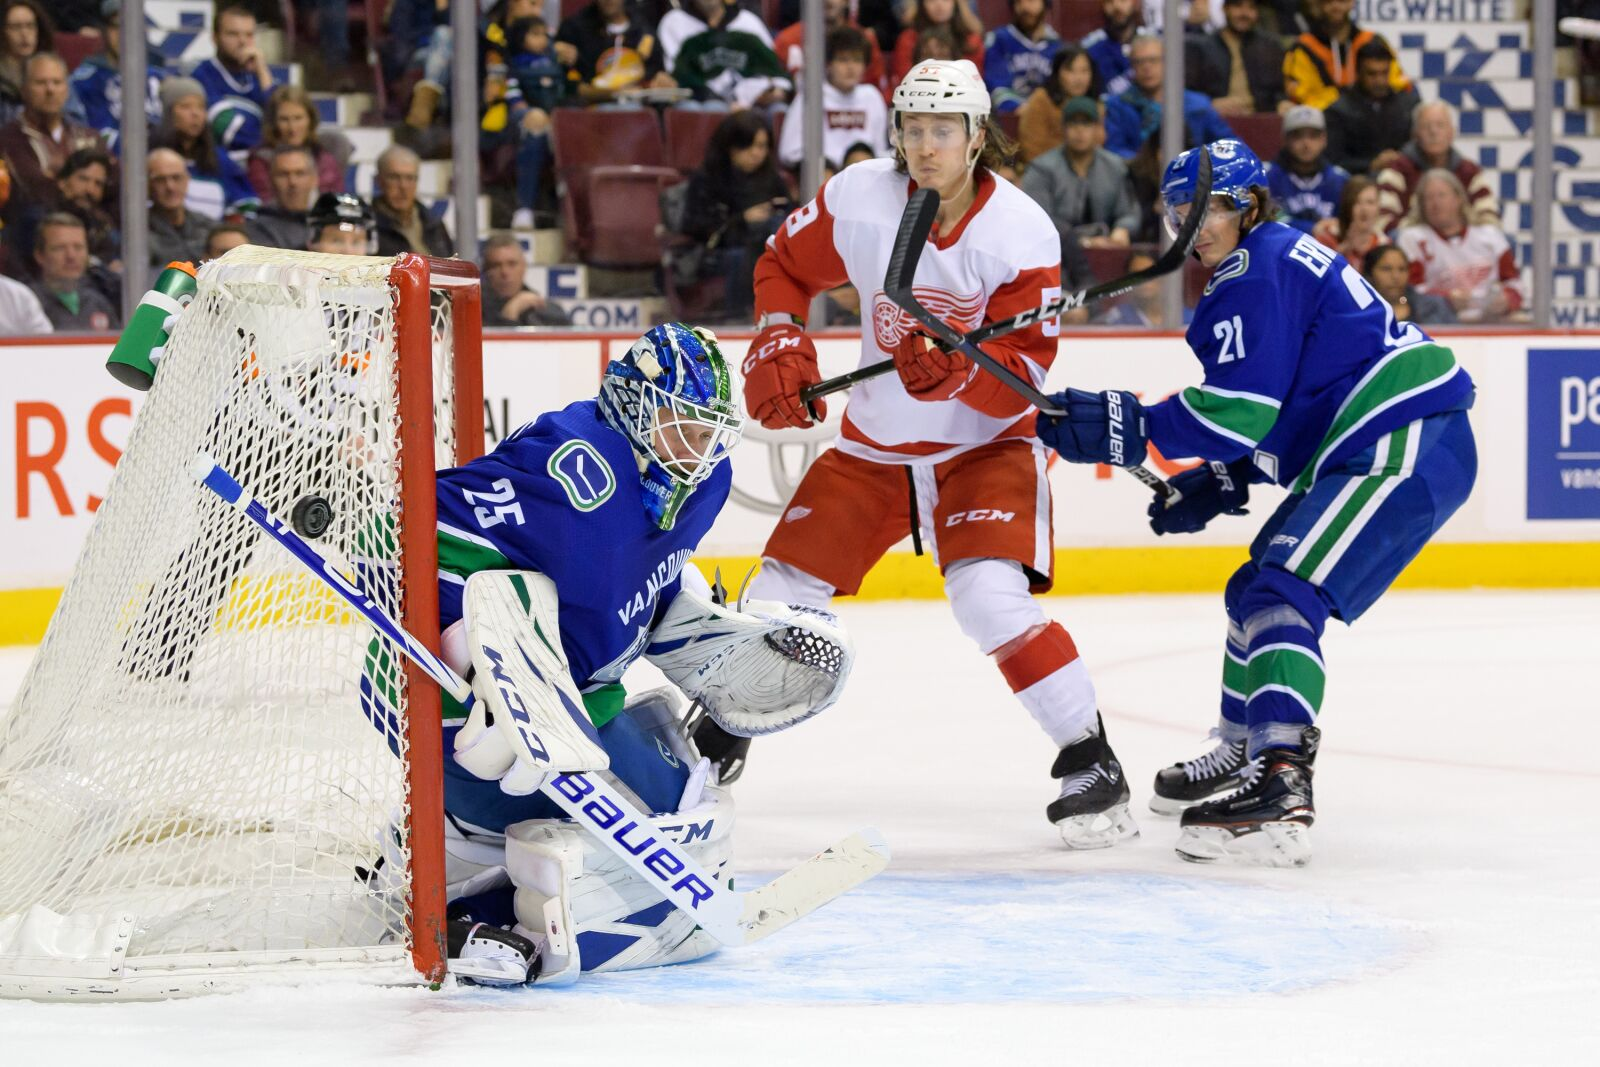 Vancouver Canucks gameday: Clash with Detroit Red Wings